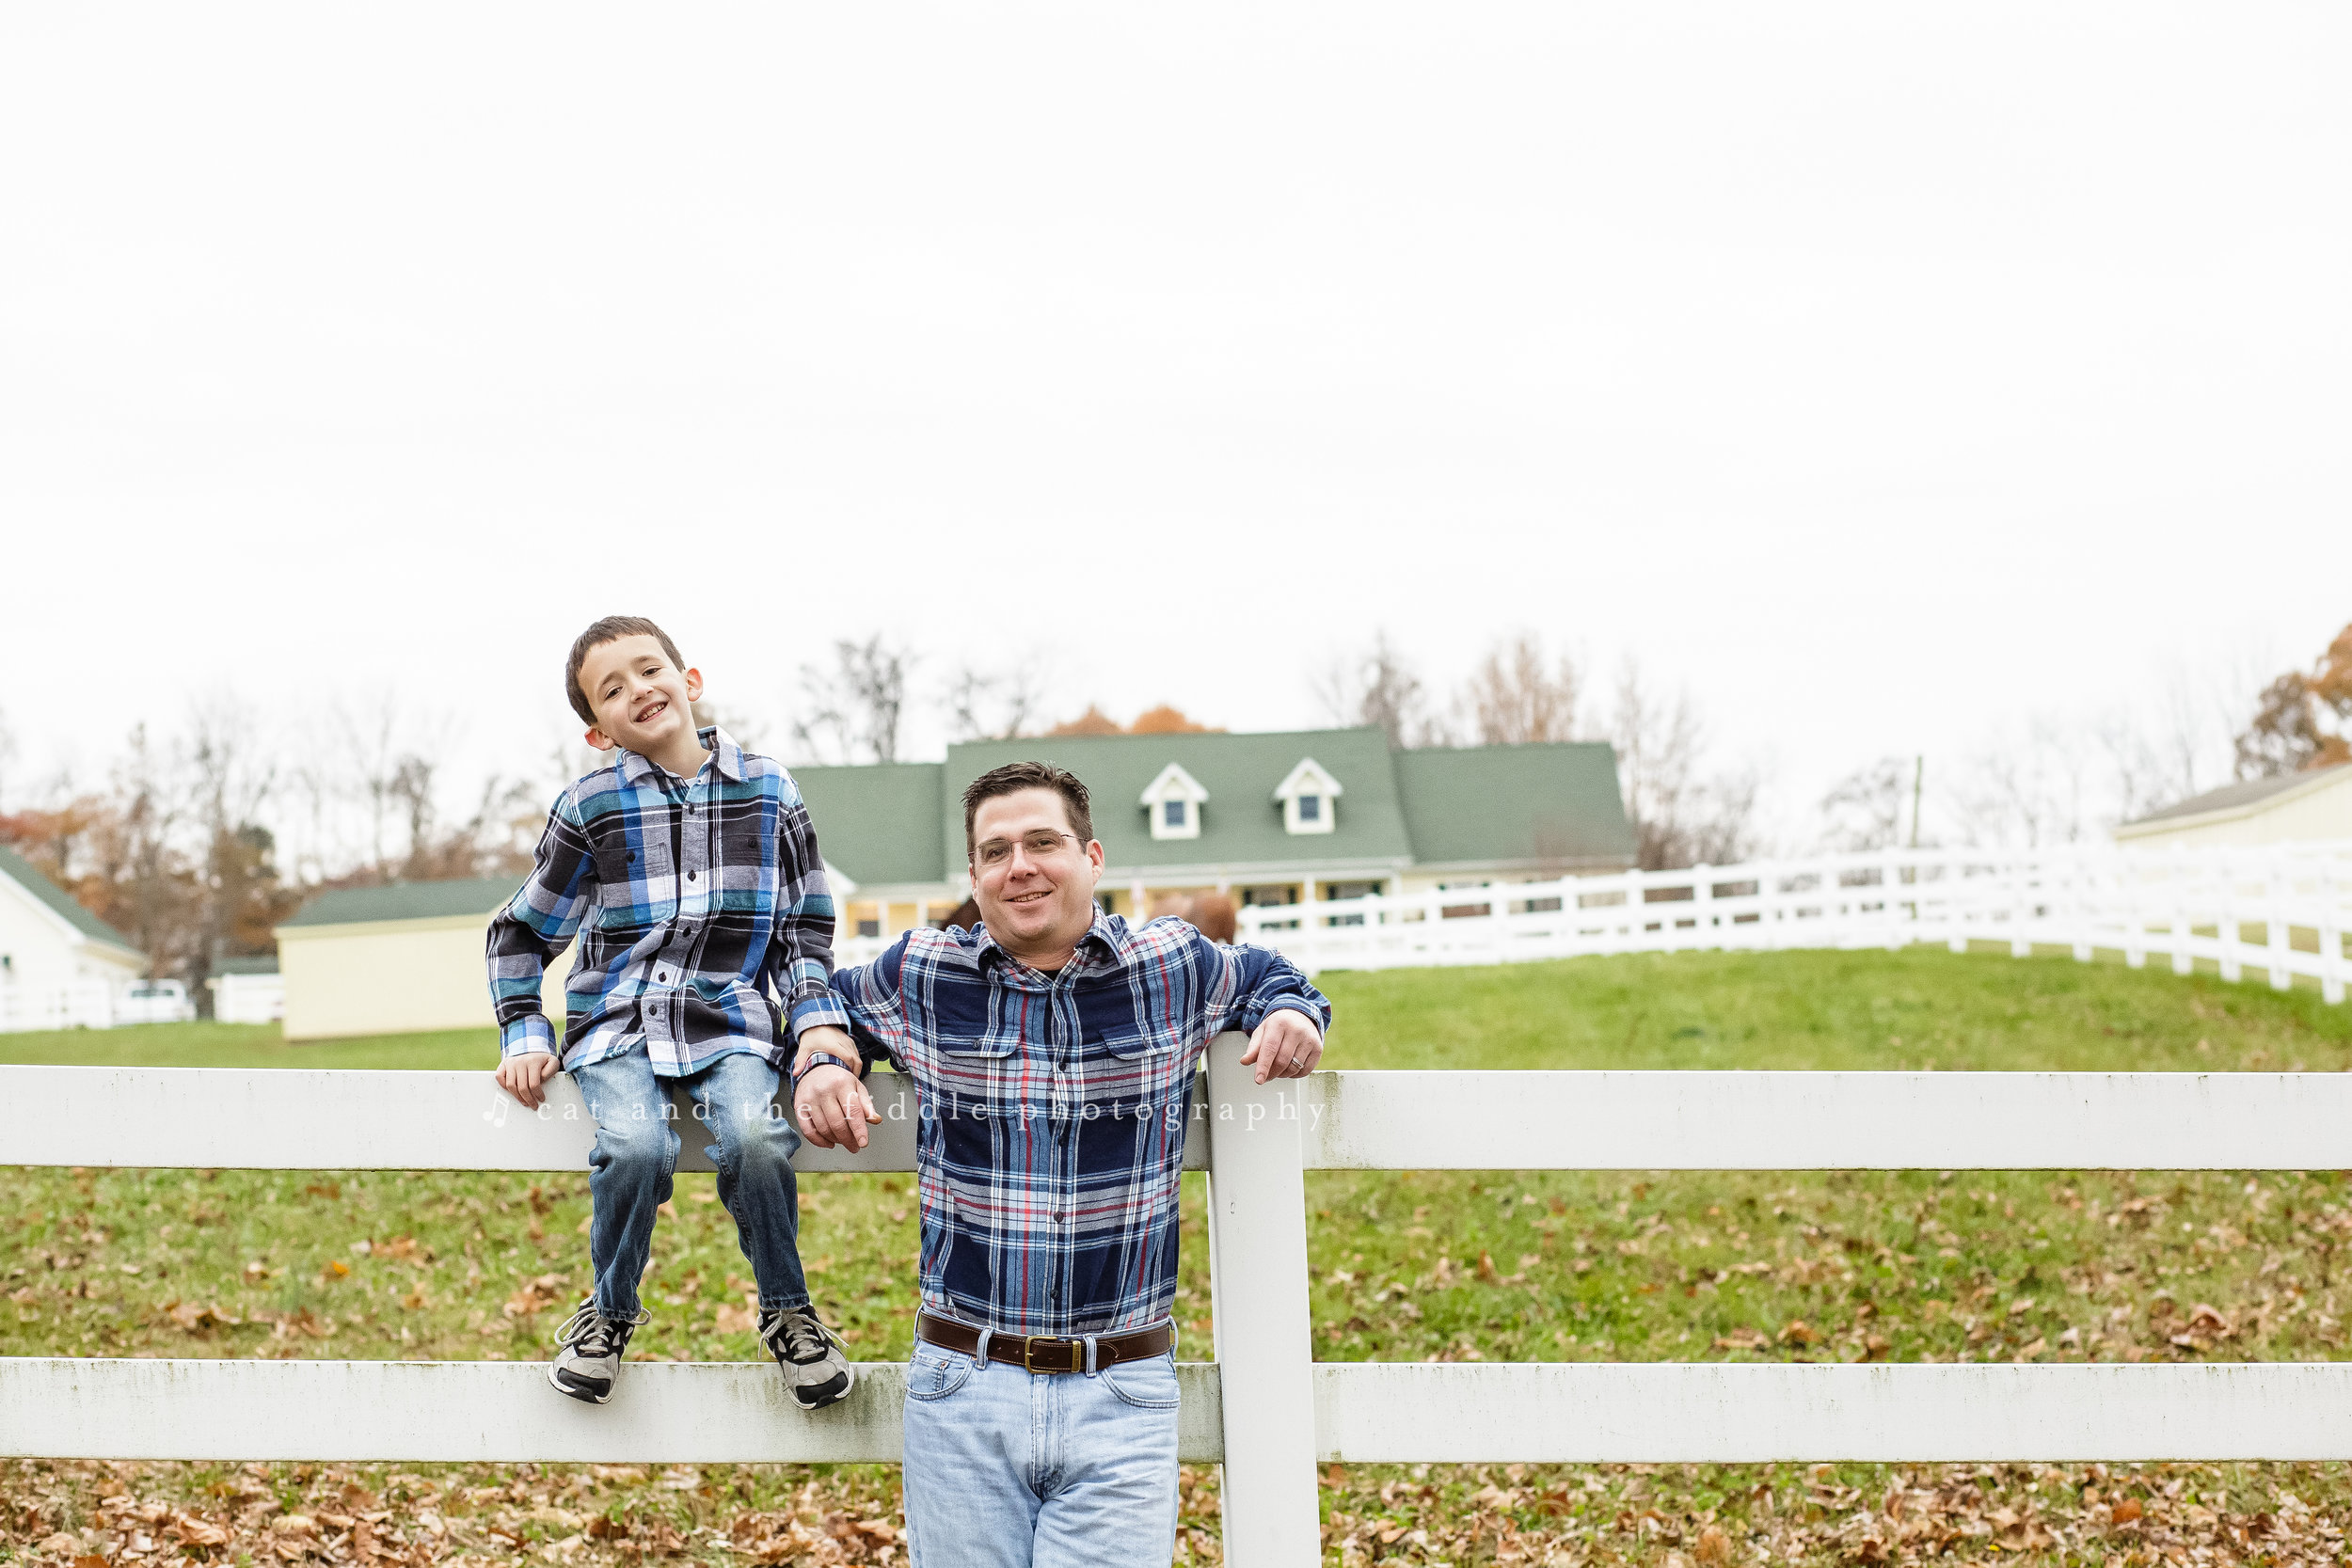 South County Annapolis Family Photographer 11.jpg